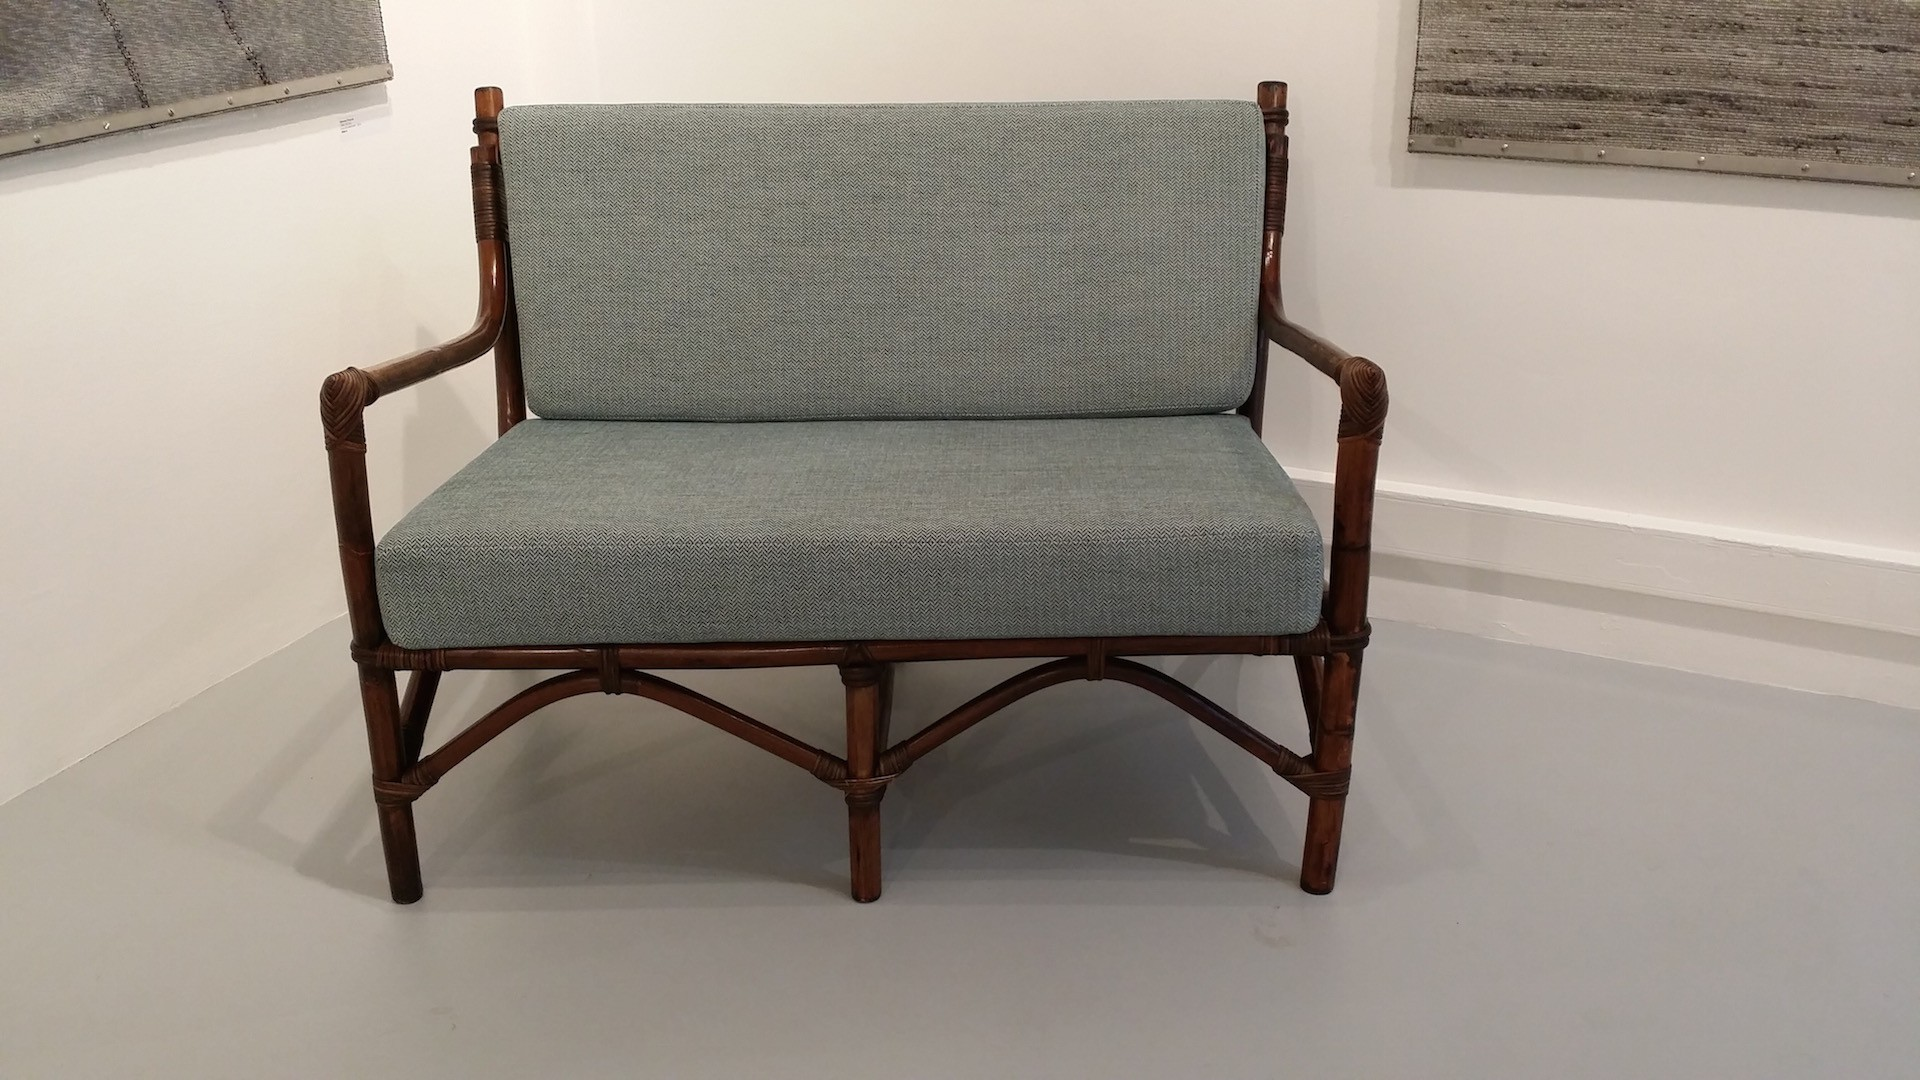 2 Seater Sofa In Philippines Cane Wood And Fabric 1960s